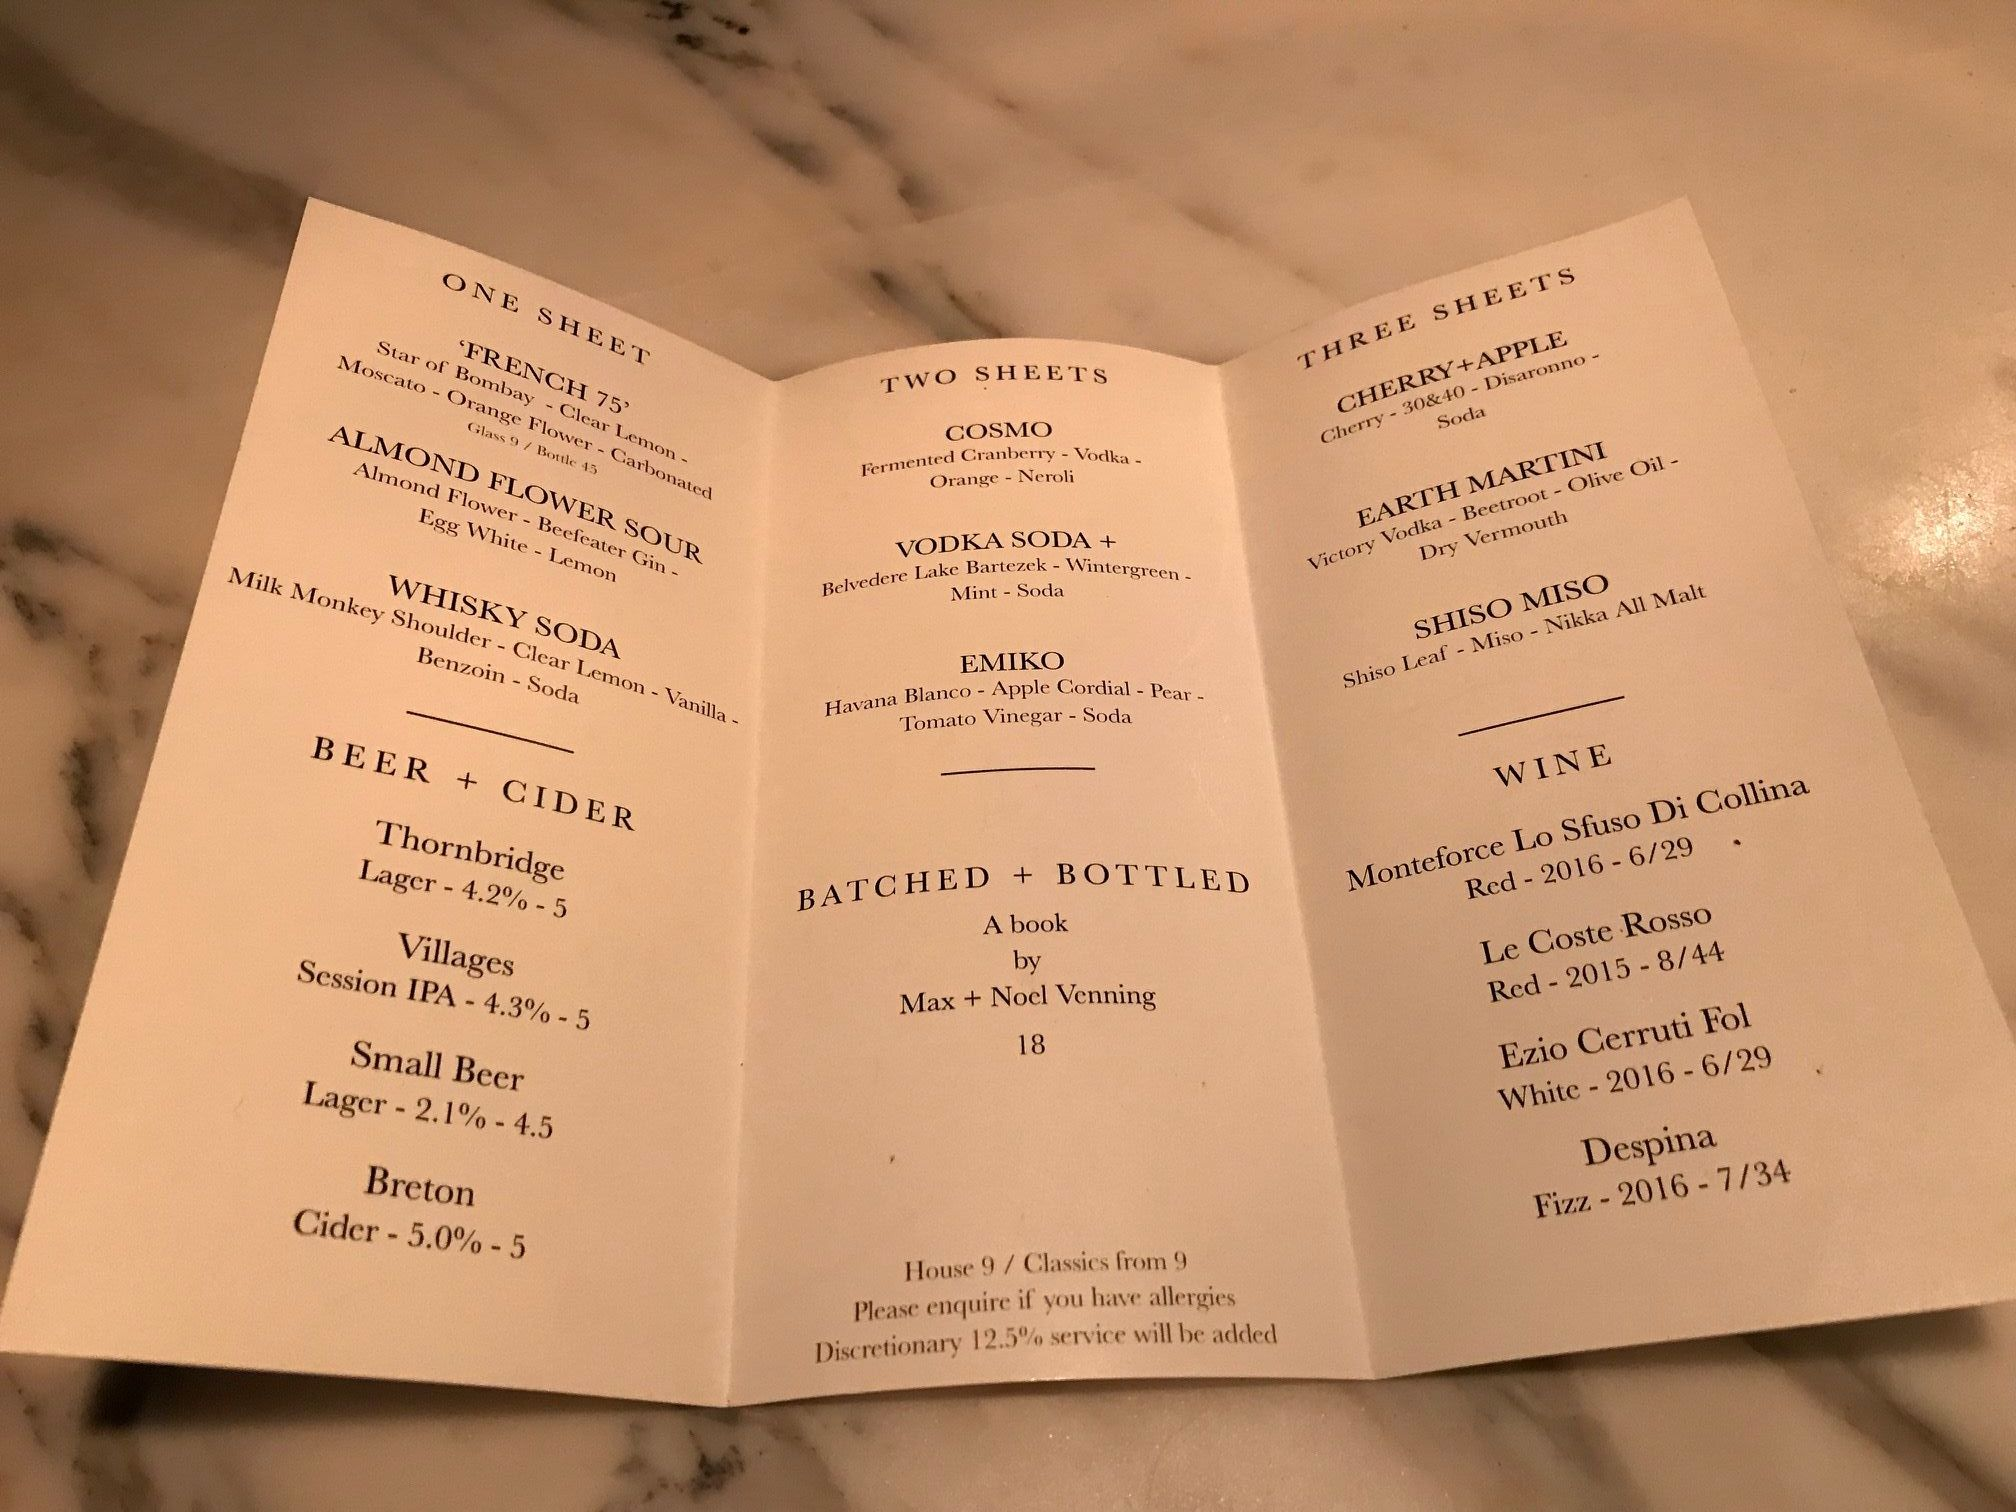 Three Sheets cocktail list